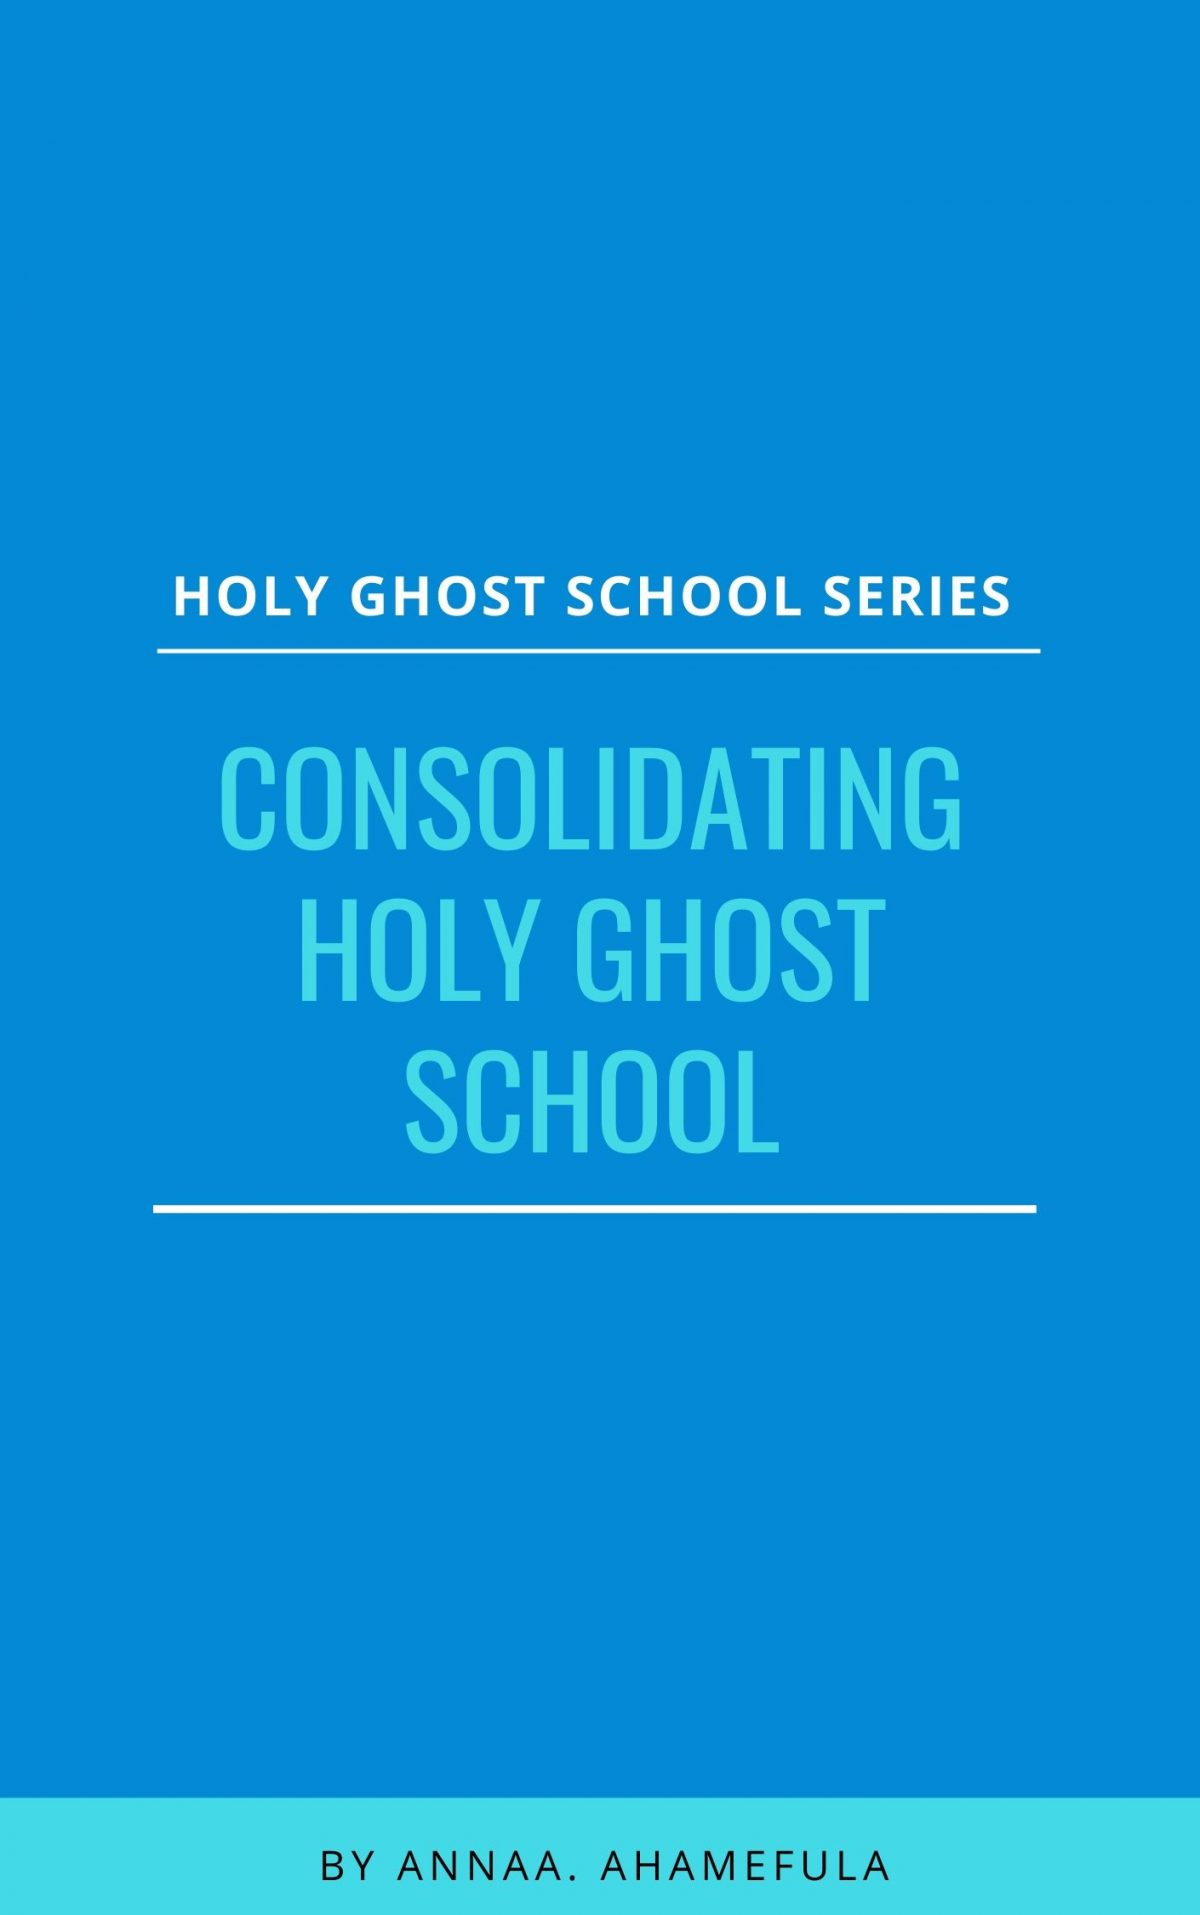 Consolidated holy ghost school